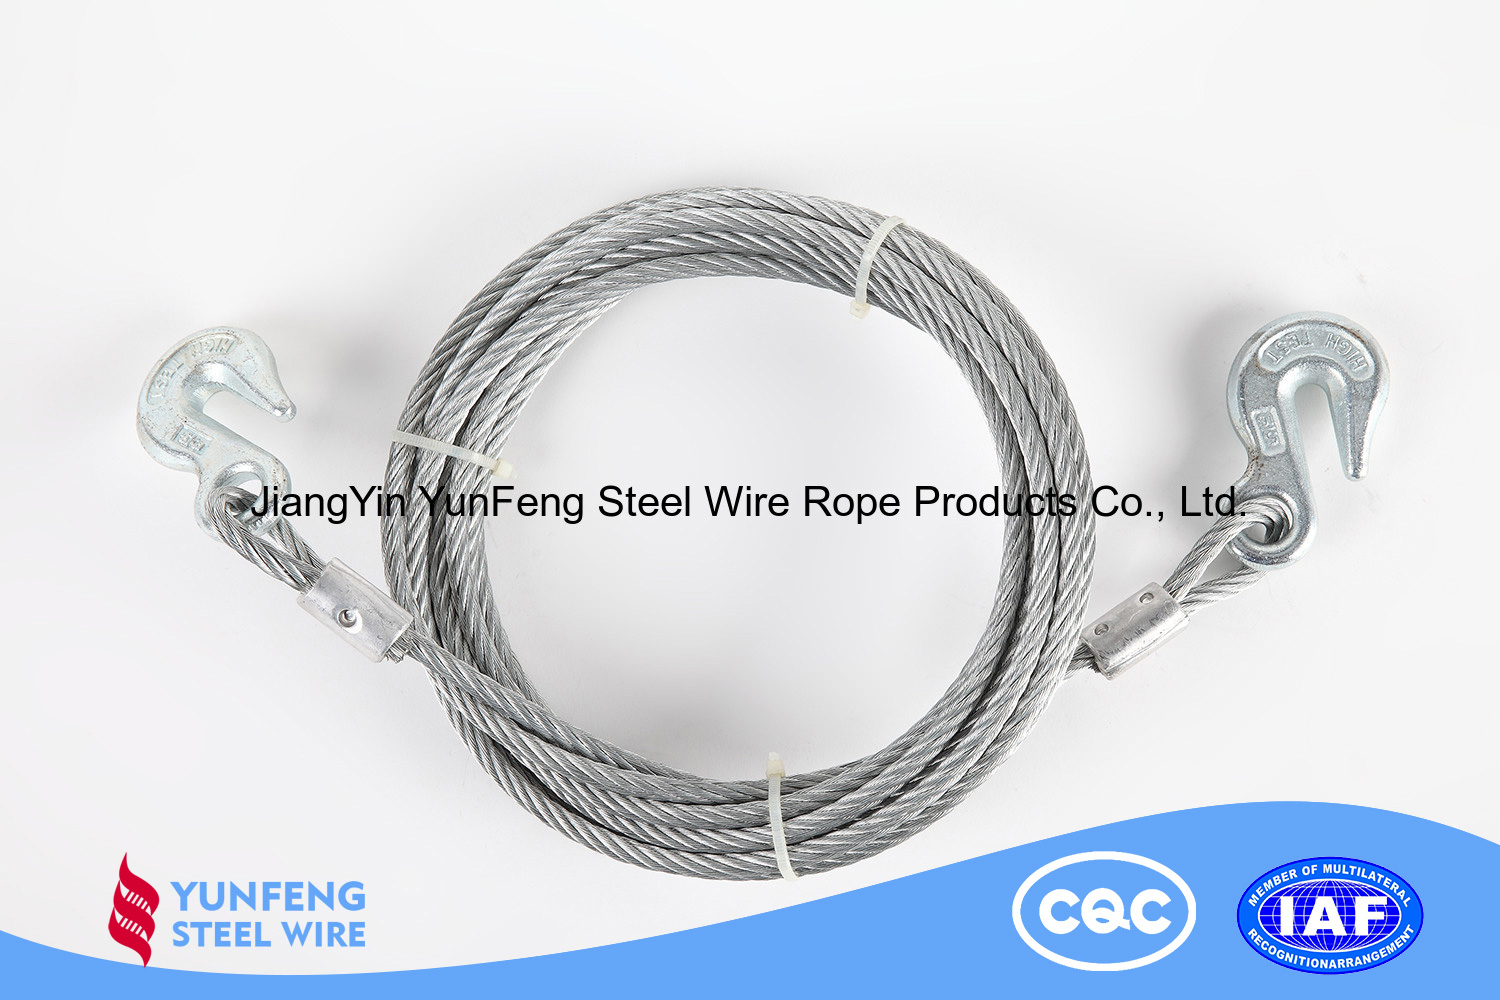 JiangYin YunFeng Steel Wire Rope Products Co., Ltd/Сompanies